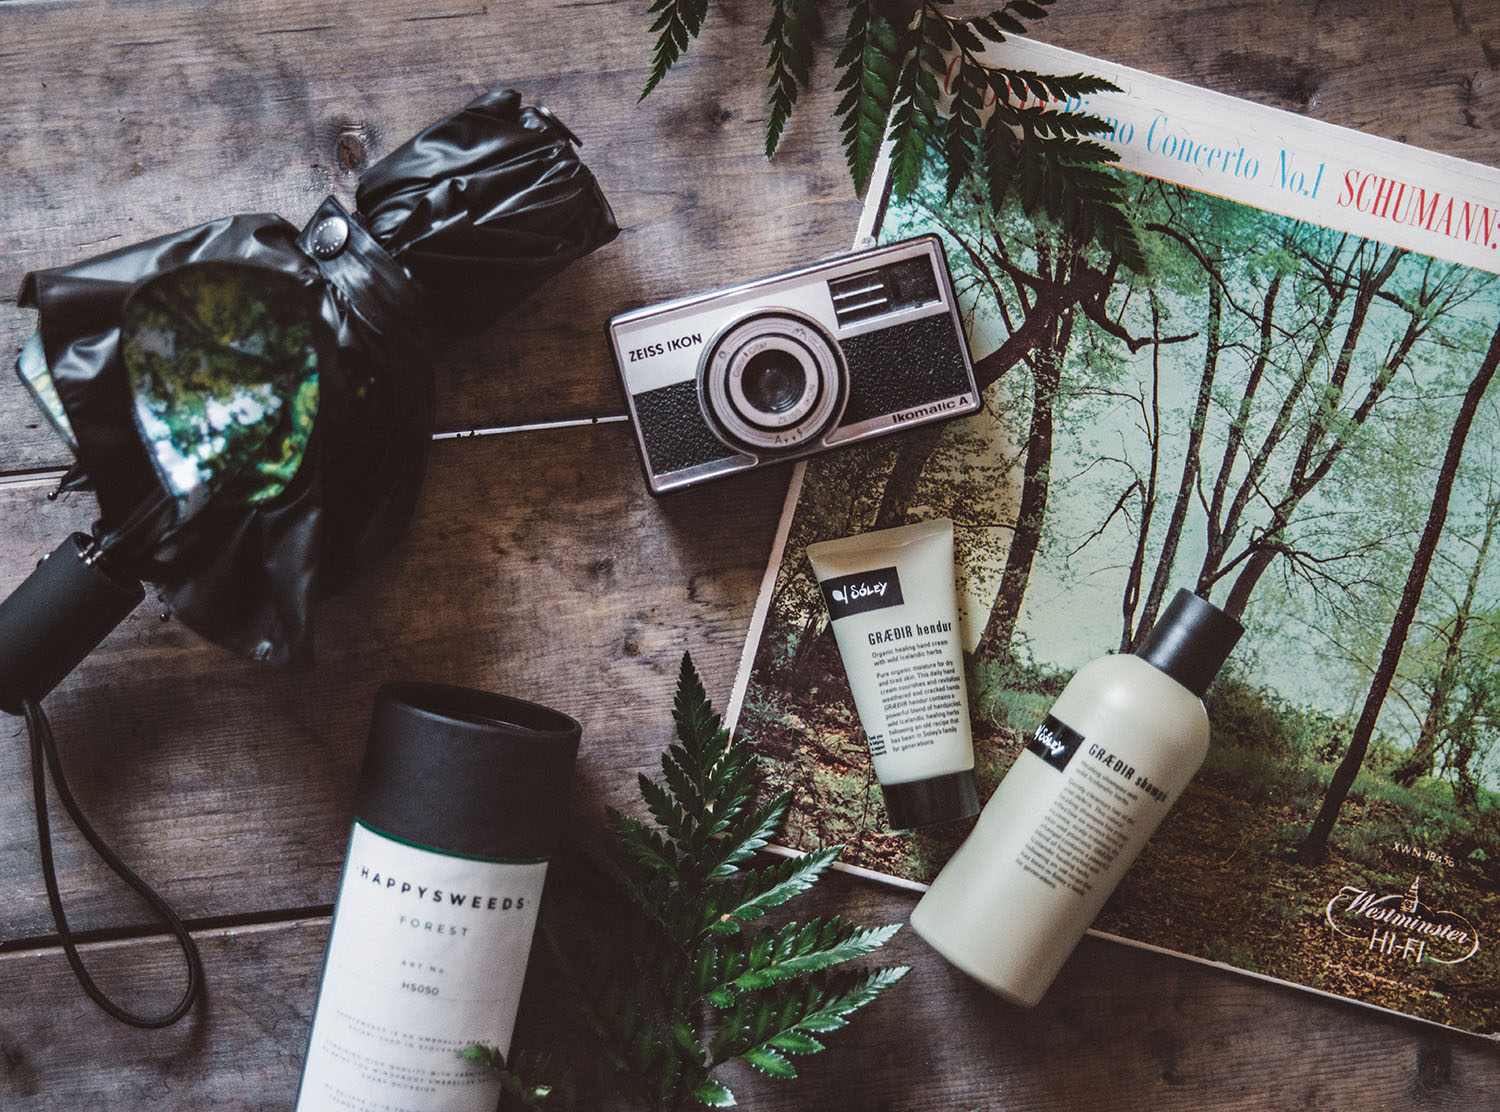 Flatlay with Happysweeds Forest Umbrella & Soley GRÆÐIR hendur & GRÆÐIR shampó